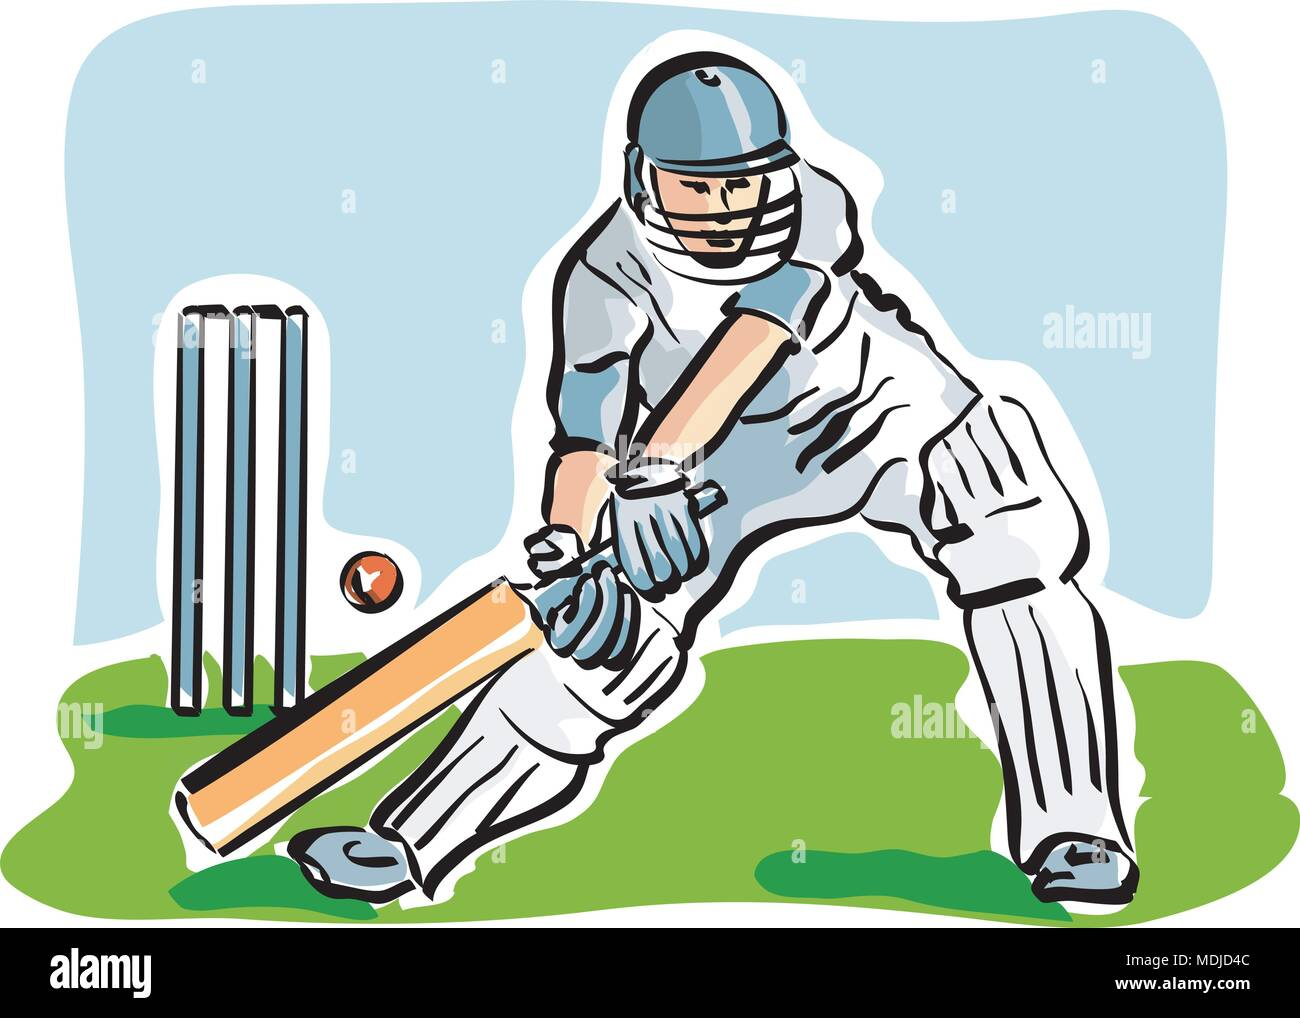 vector Illustration of a cricket player Stock Vector